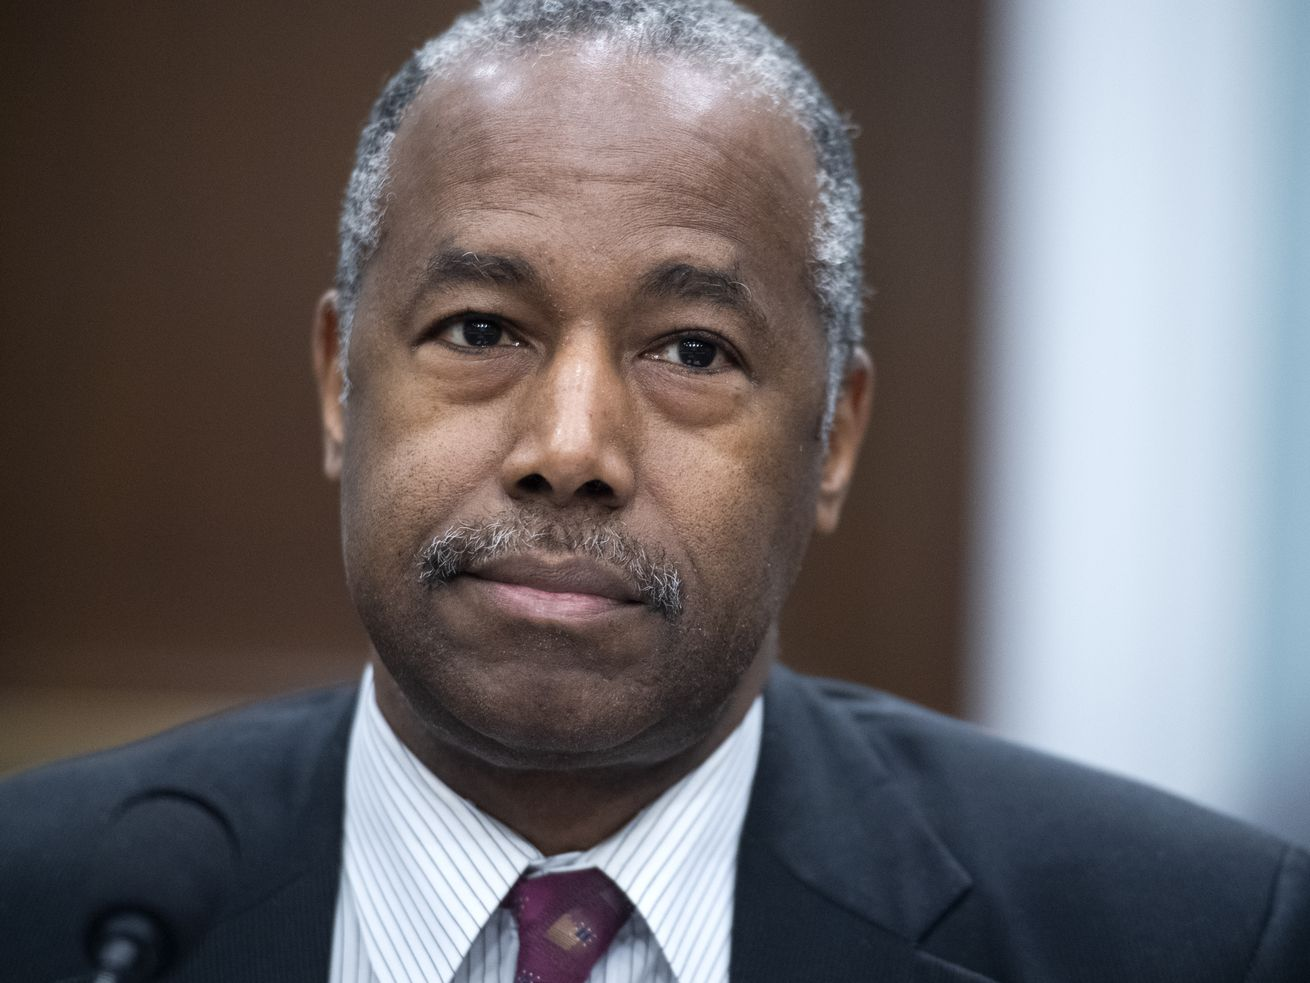 Carson, in a dark suit and red tie, frowns slightly.